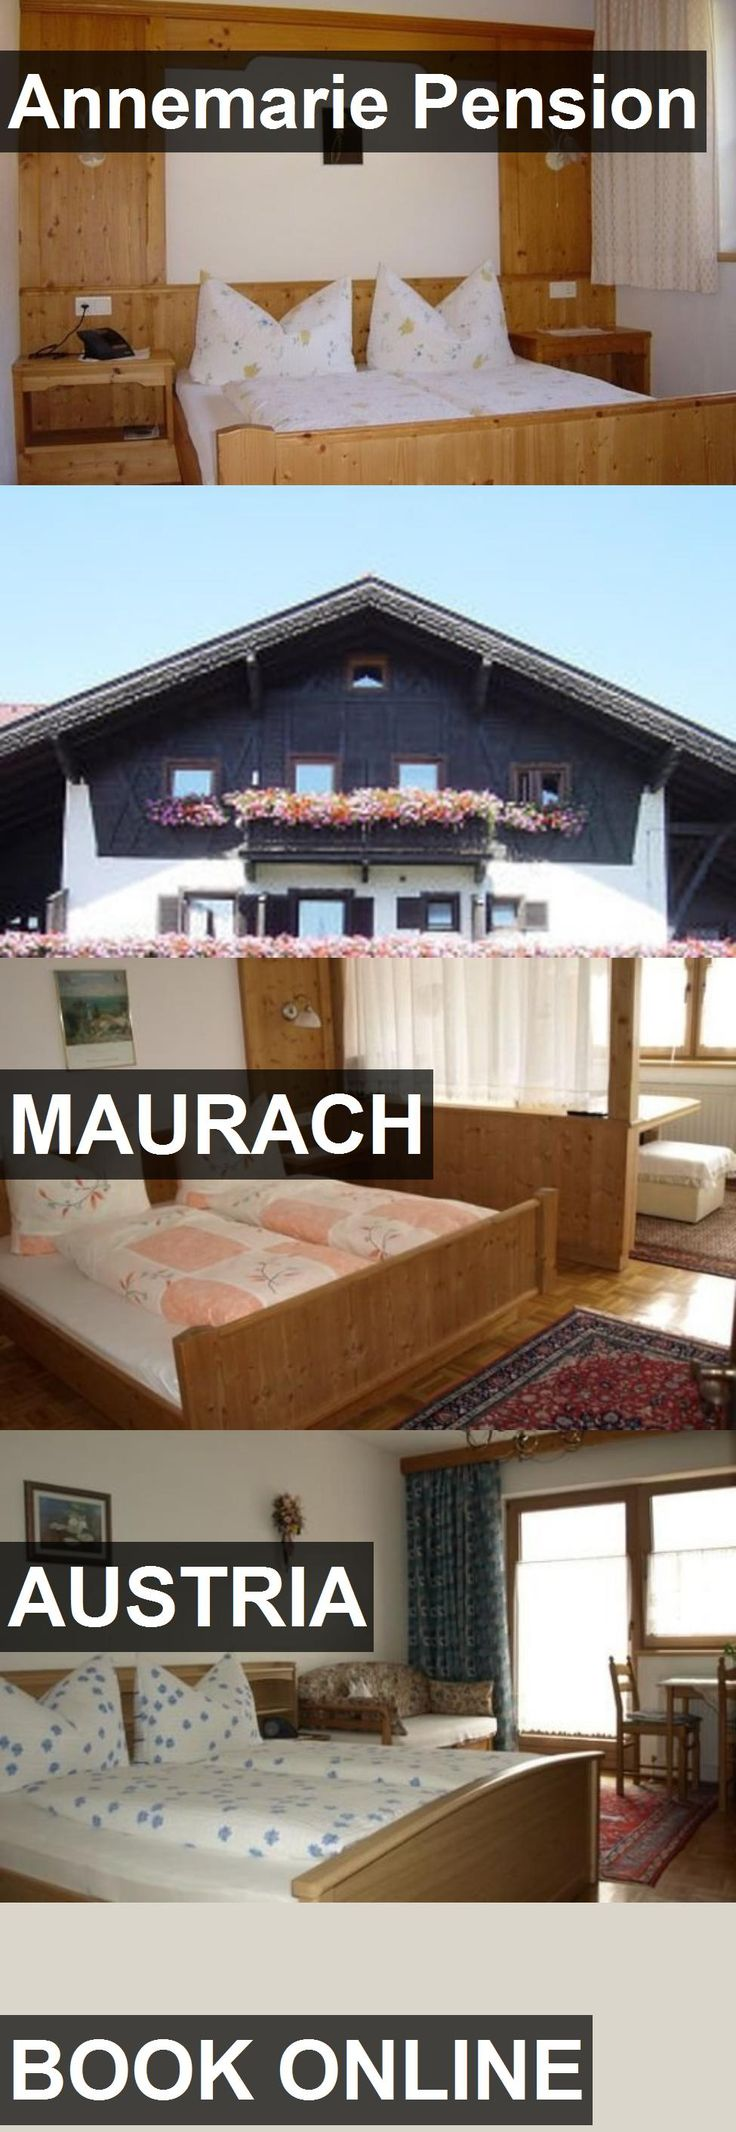 Hotel Annemarie Pension in Maurach, Austria. For more information, photos, reviews and best prices please follow the link. #Austria #Maurach #AnnemariePension #hotel #travel #vacation